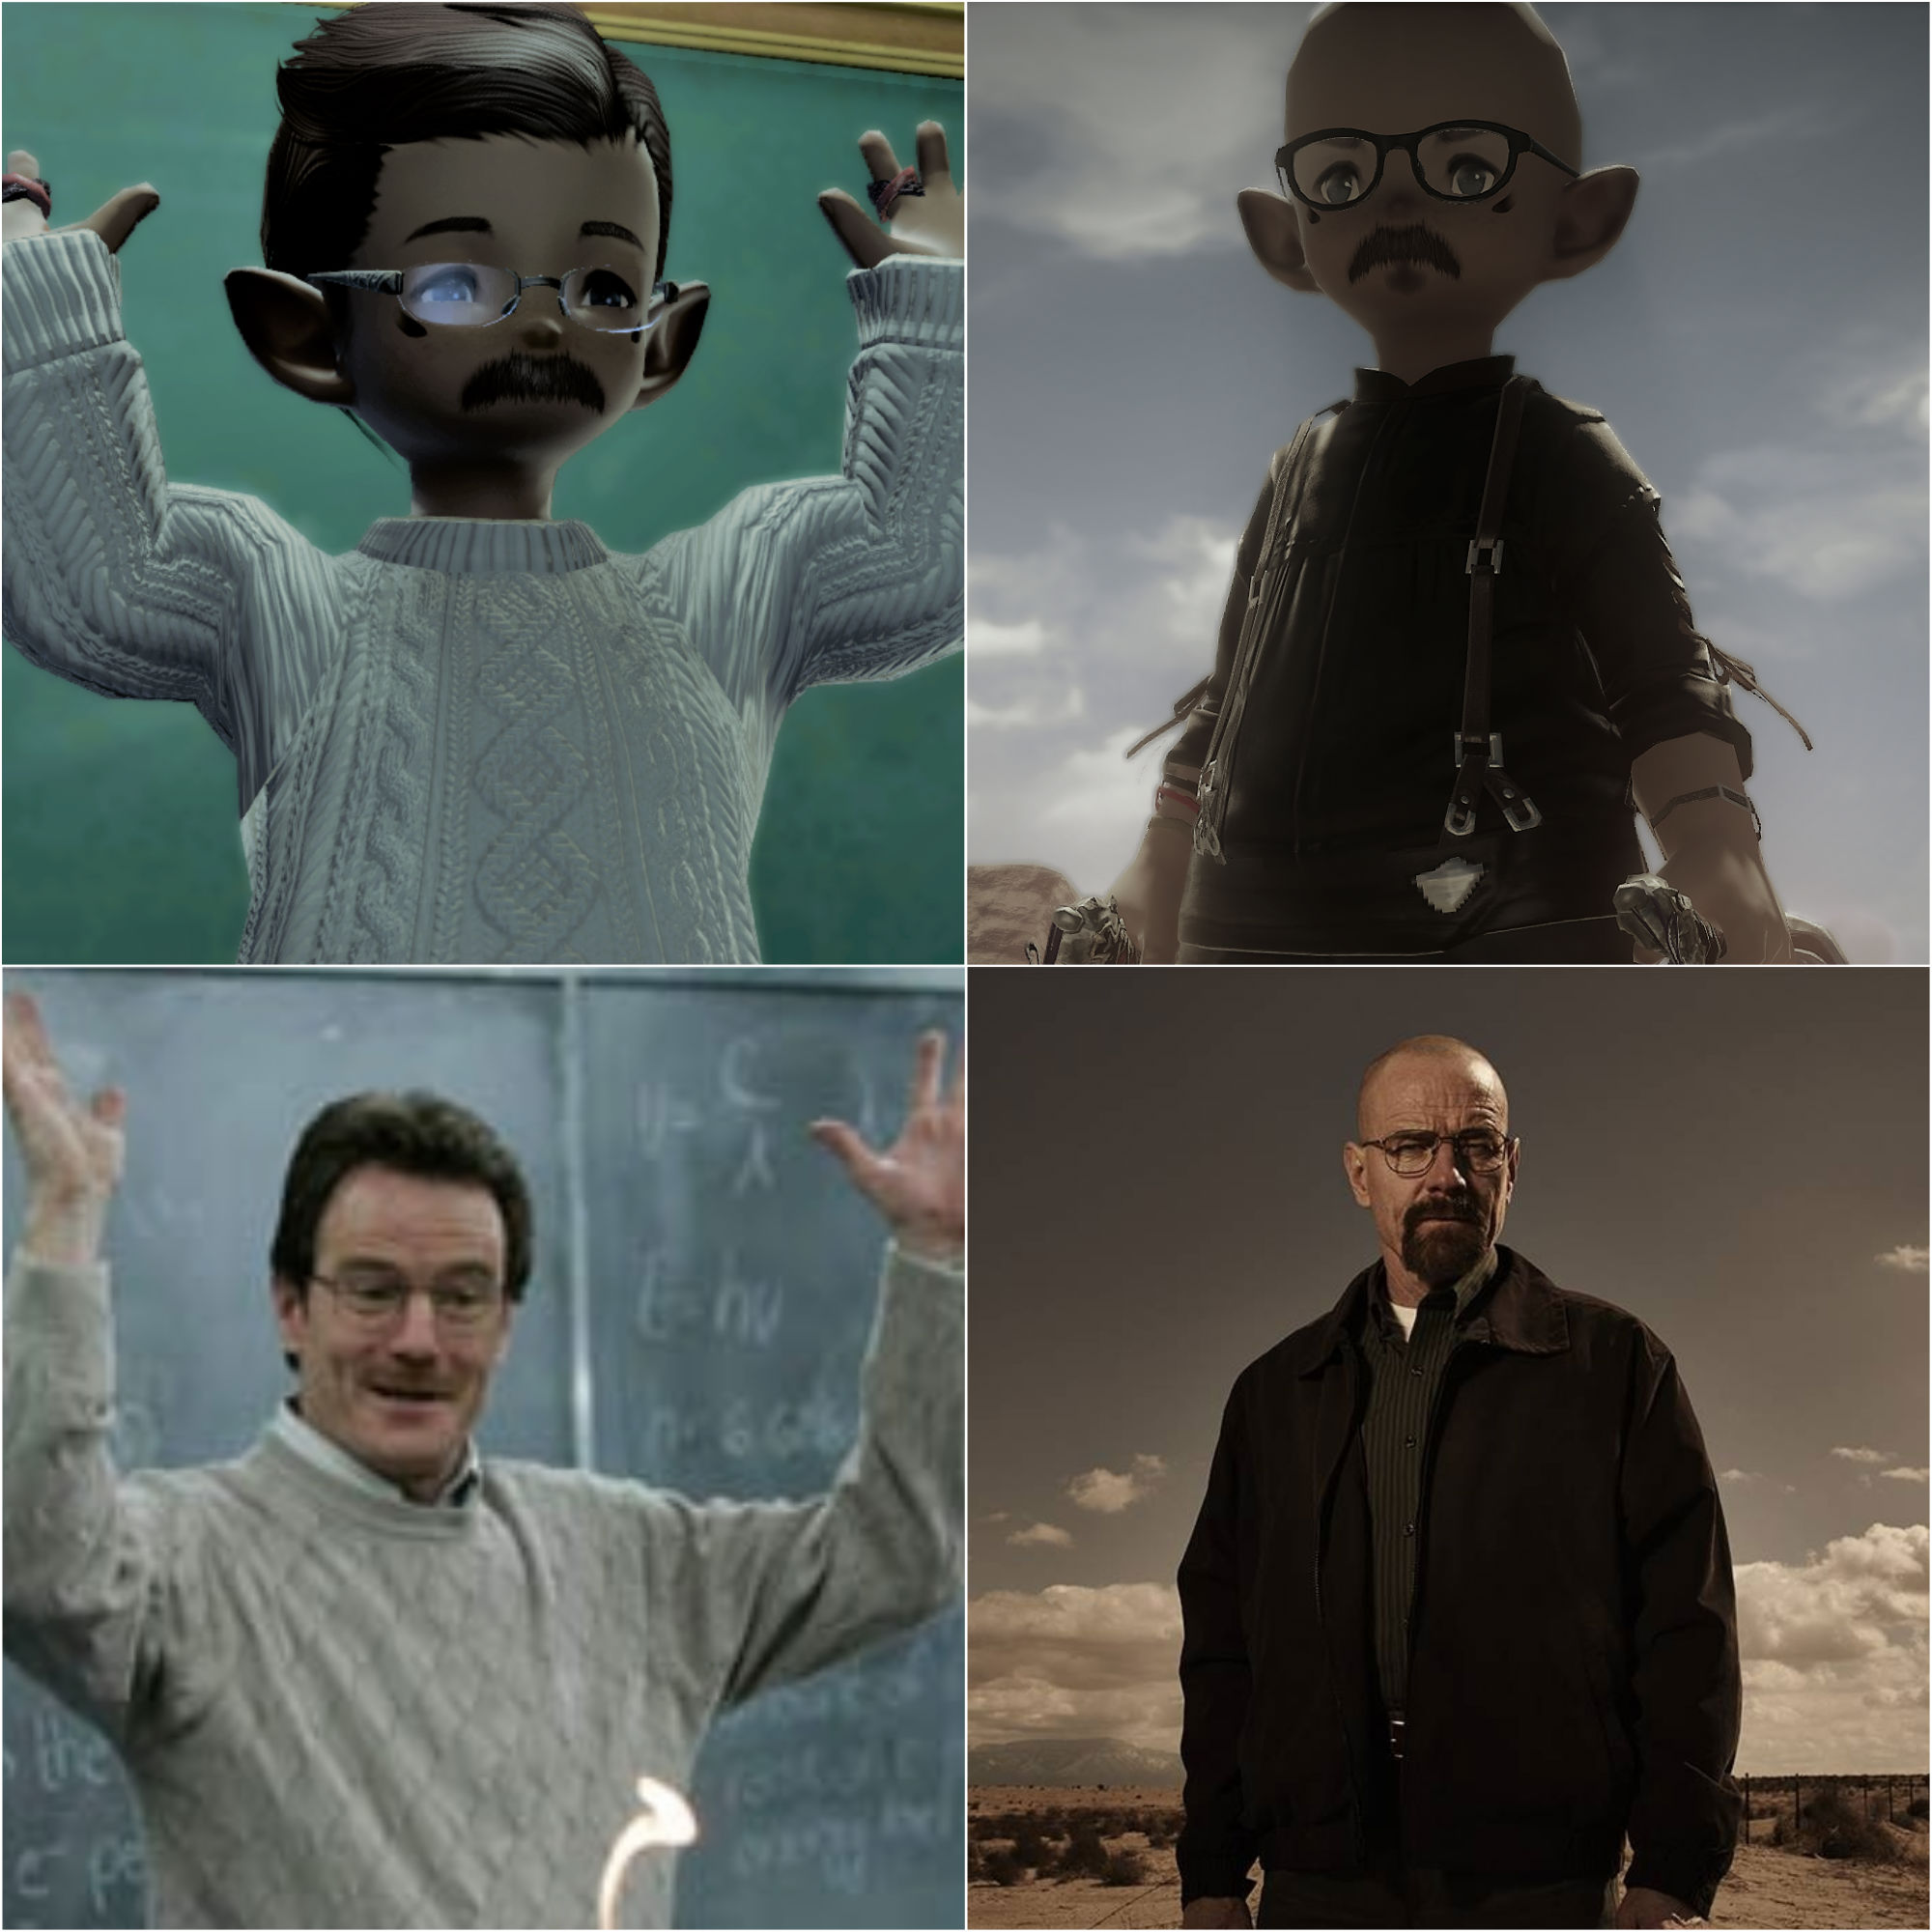 Oh hell yes, this Breaking Bad Final Fantasy XIV cosplay is